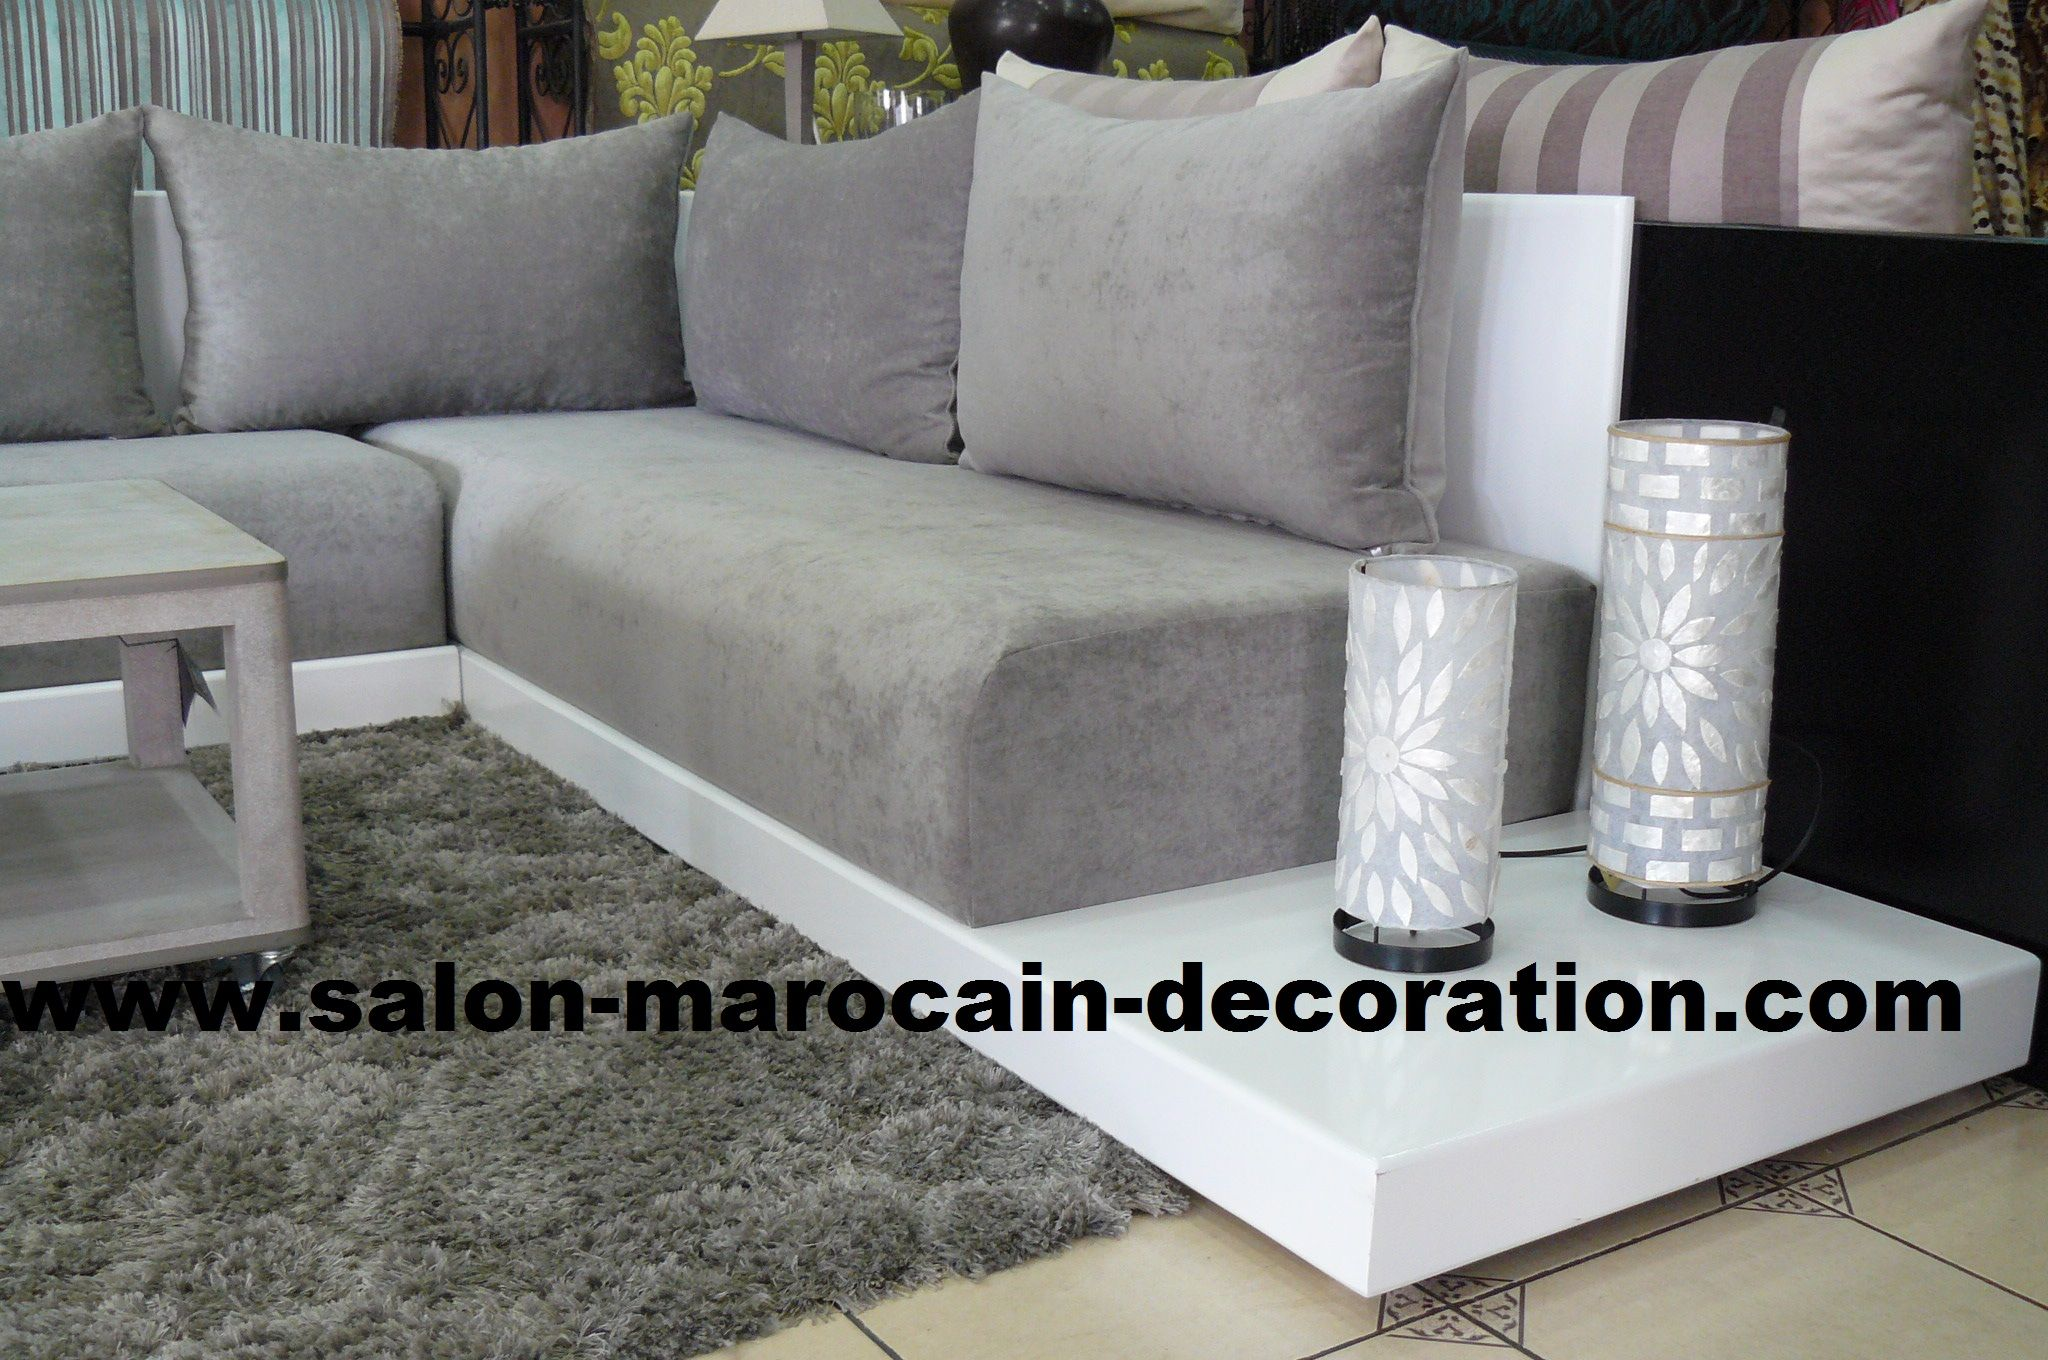 les 25 meilleures id es de la cat gorie sedari marocain sur pinterest salon marocain moderne. Black Bedroom Furniture Sets. Home Design Ideas